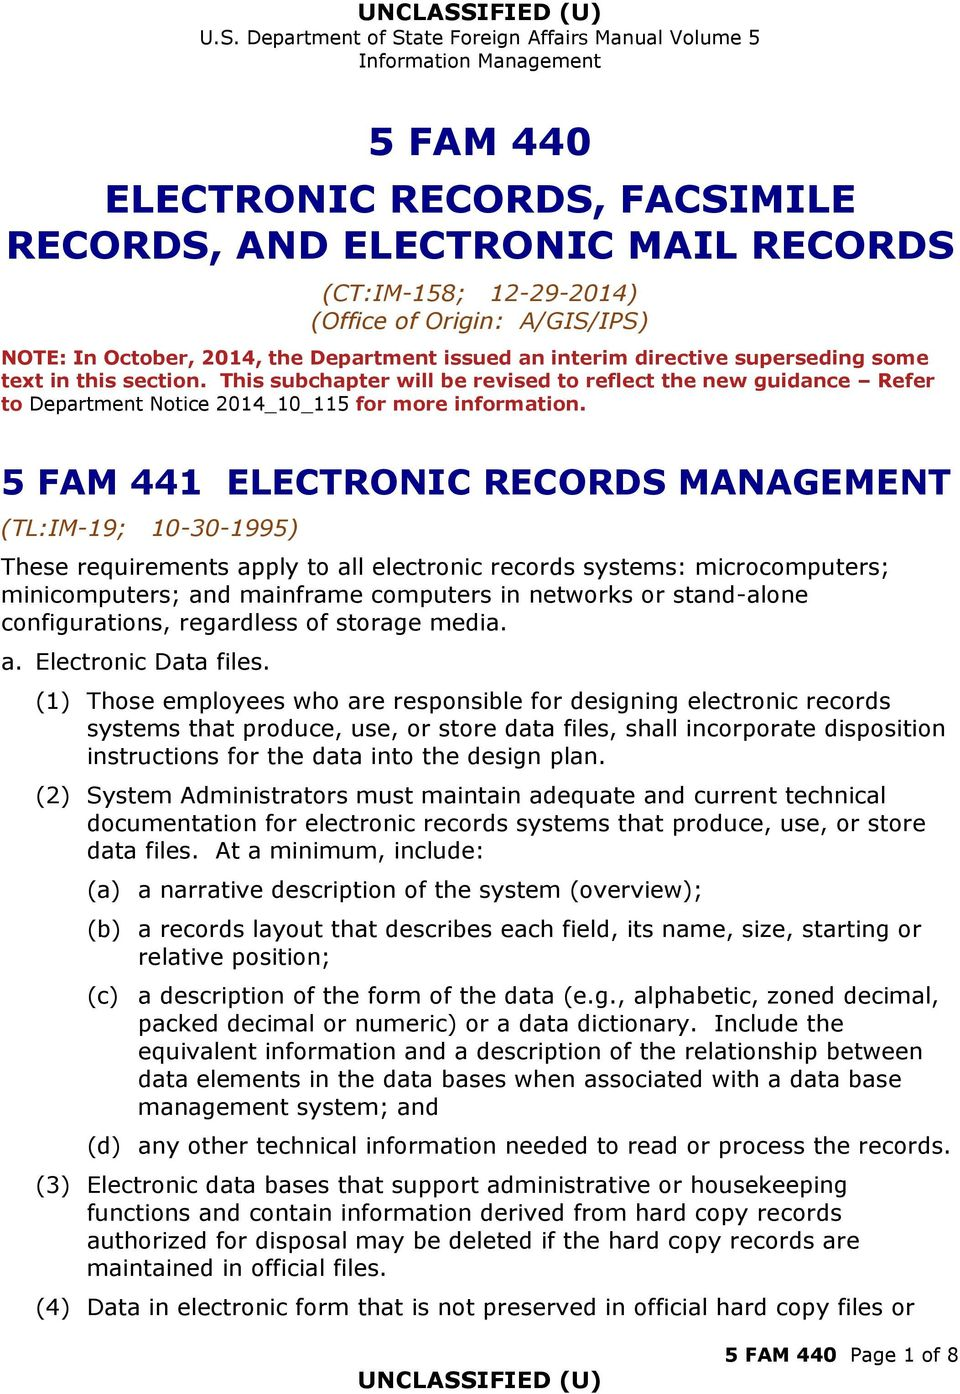 5 FAM 441 ELECTRONIC RECORDS MANAGEMENT These requirements apply to all electronic records systems: microcomputers; minicomputers; and mainframe computers in networks or stand-alone configurations,